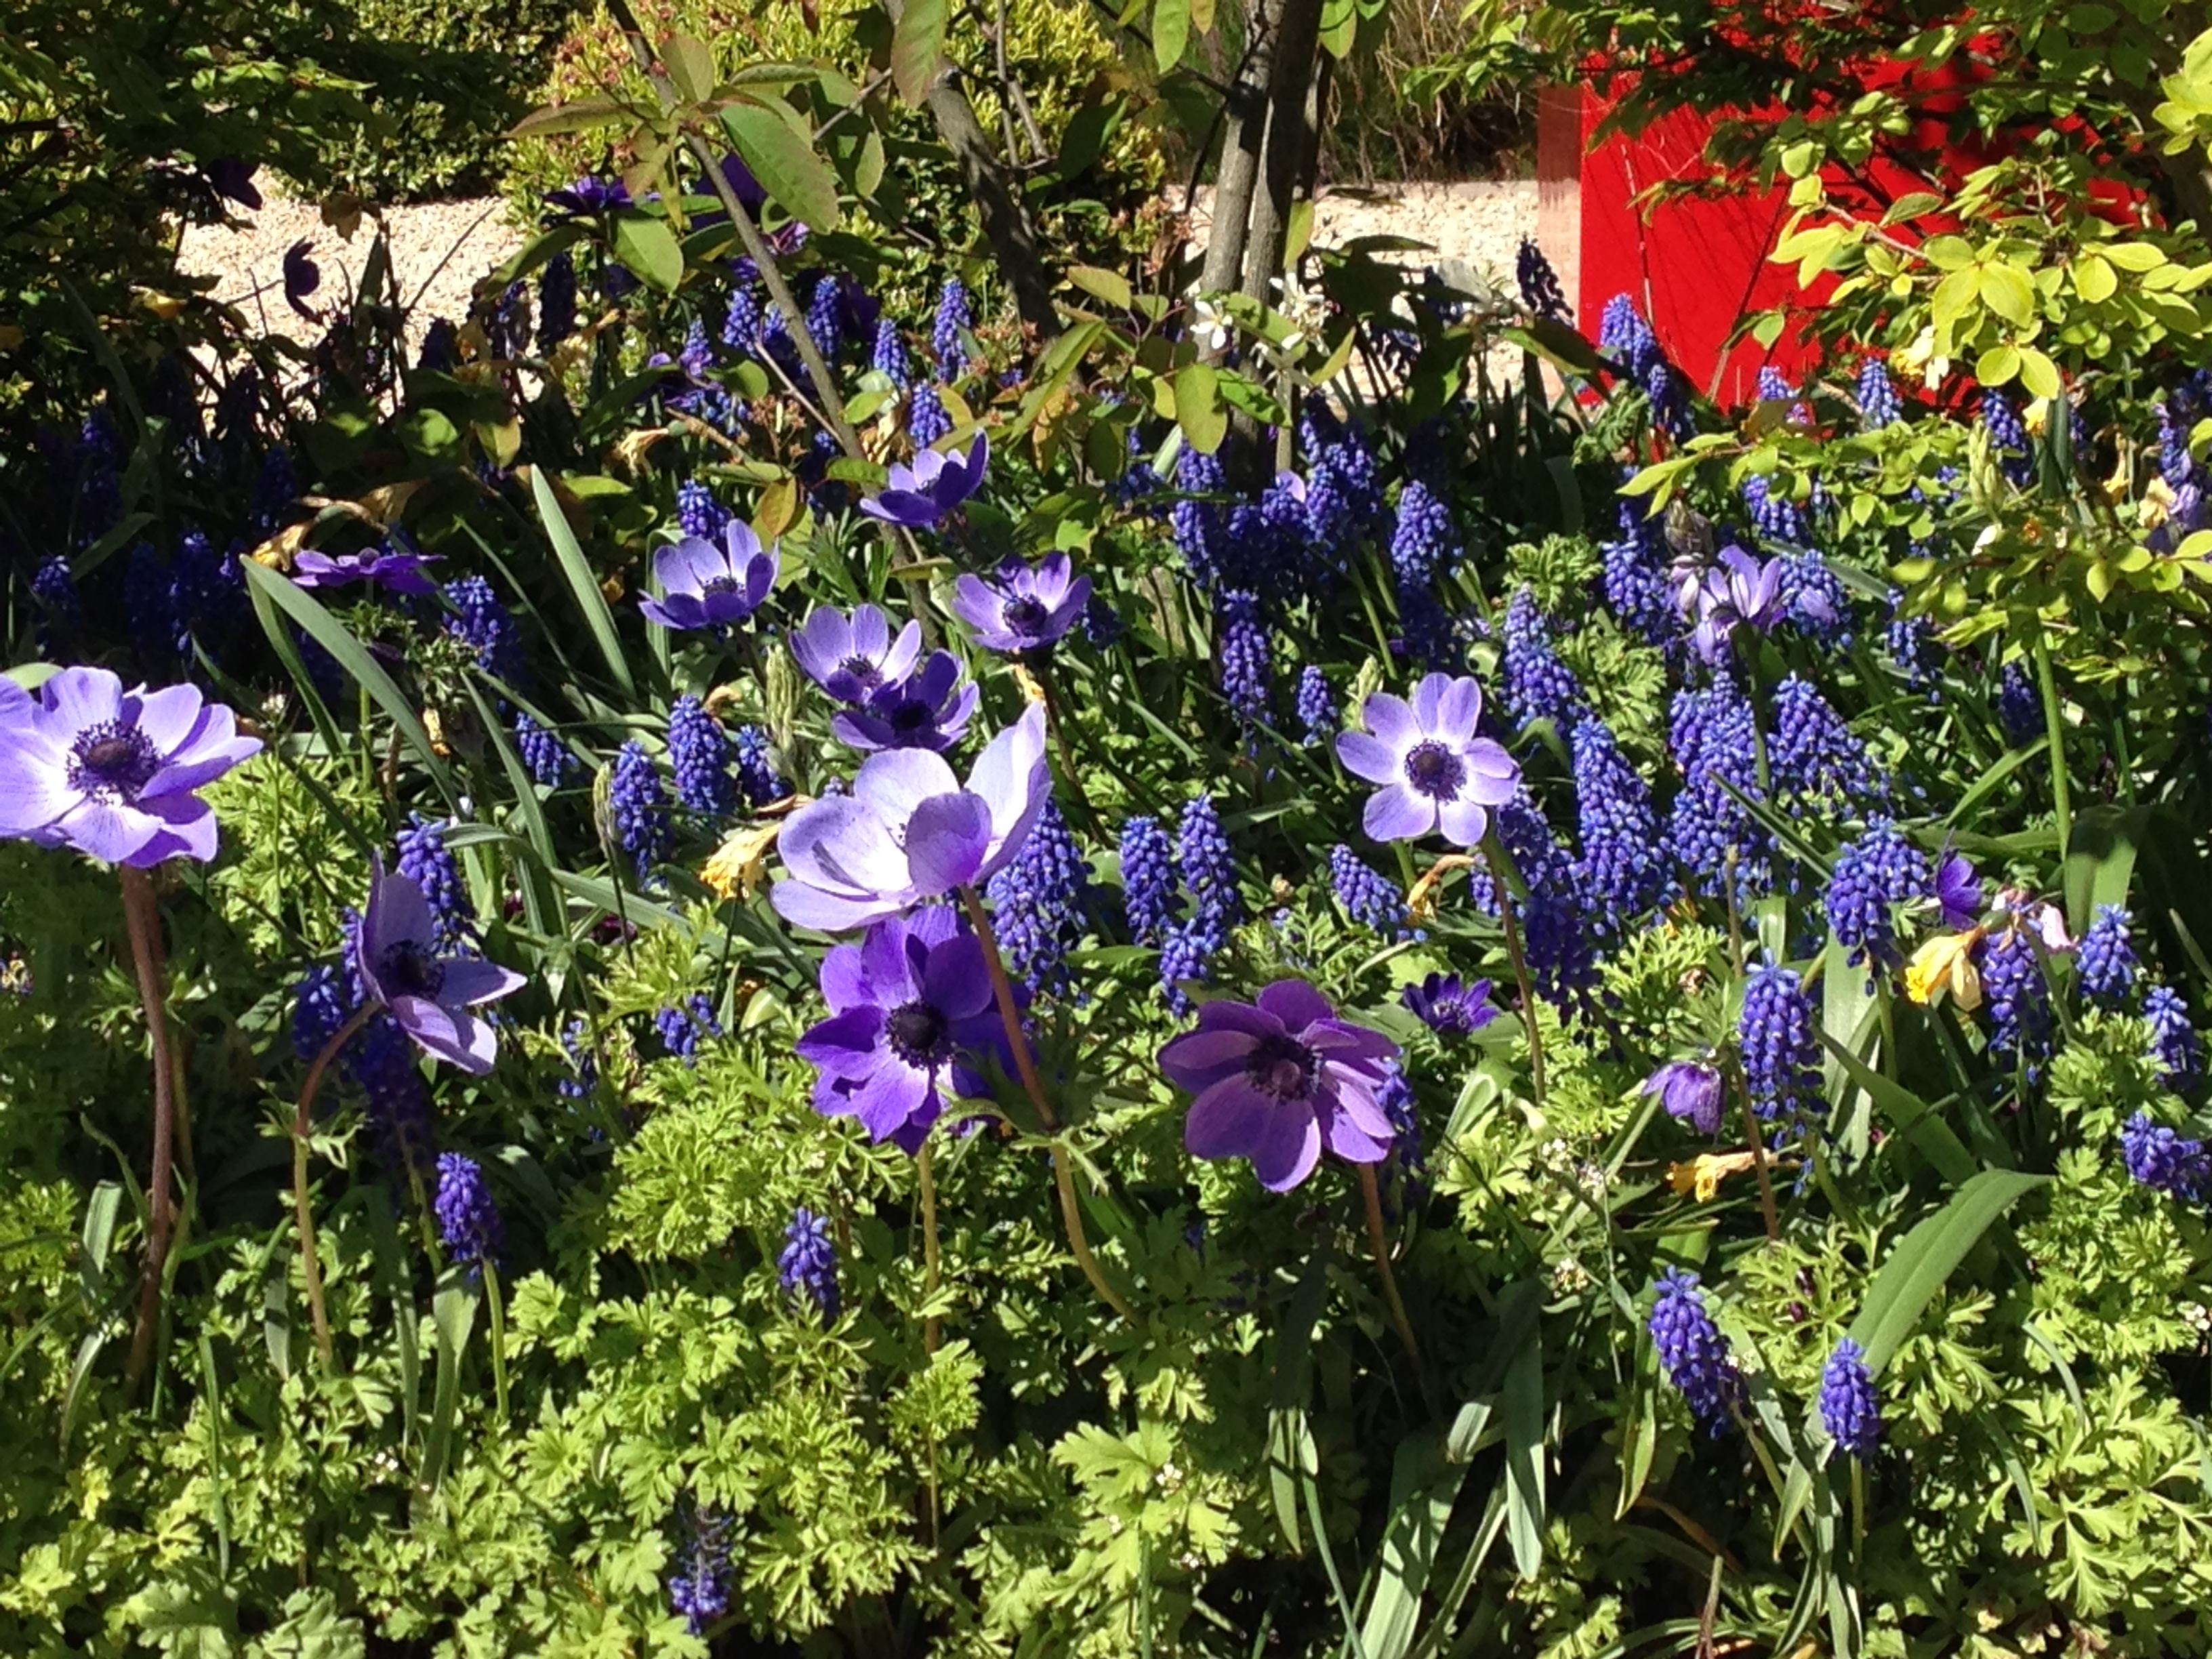 Polley Garden Design Muscari and Anemones flowering in May.